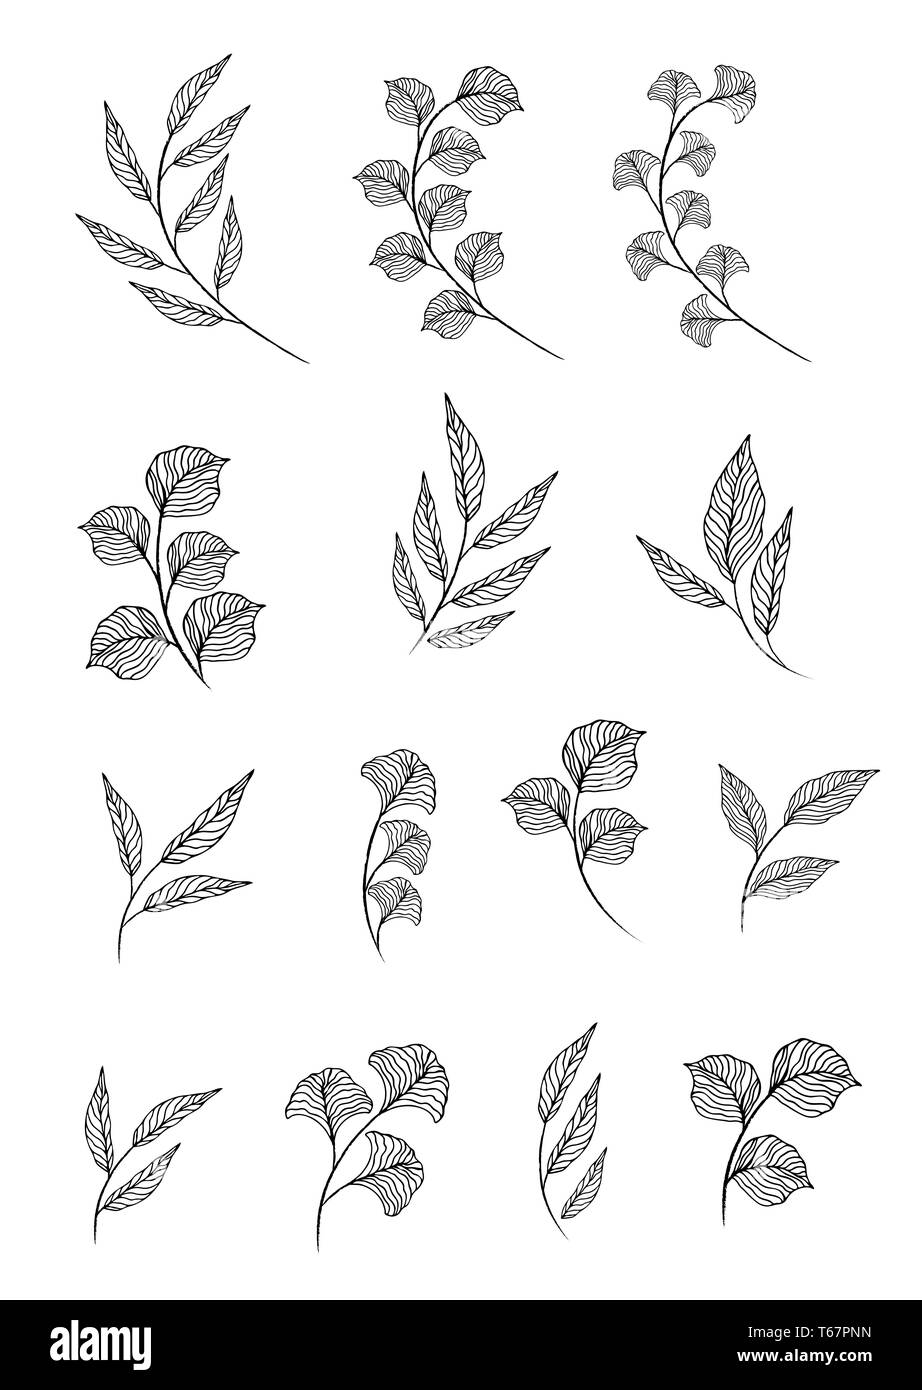 designer elements set collection of greeng leaves herbs in watercolor style. Decorative beauty elegant illustration for design - Stock Image